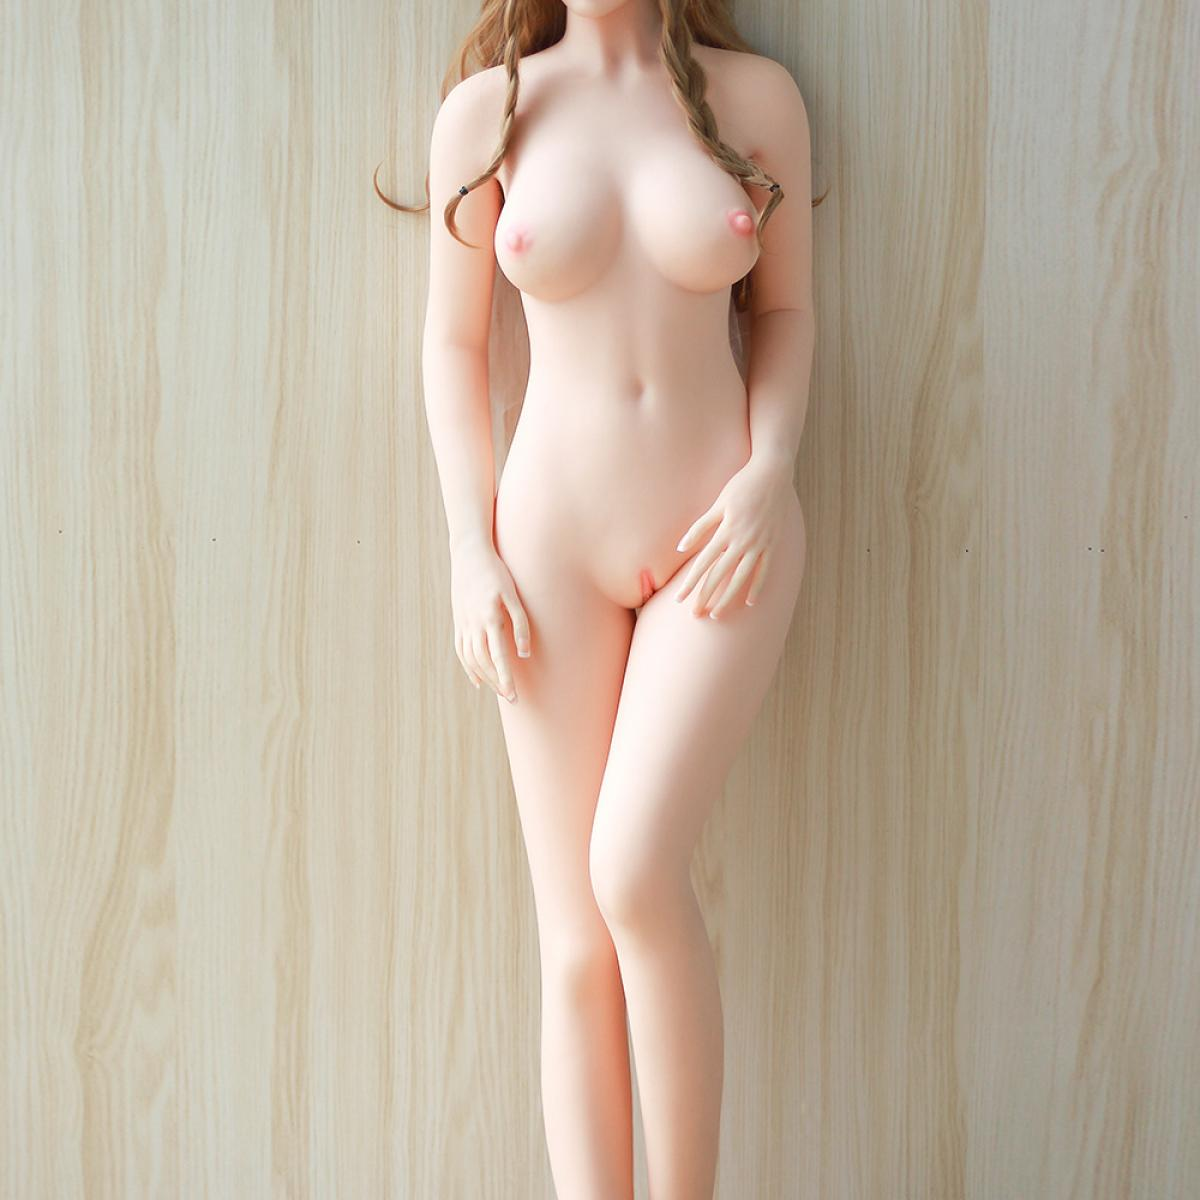 May 160cm by Jarliet for Neodoll - Realistic Sex Doll